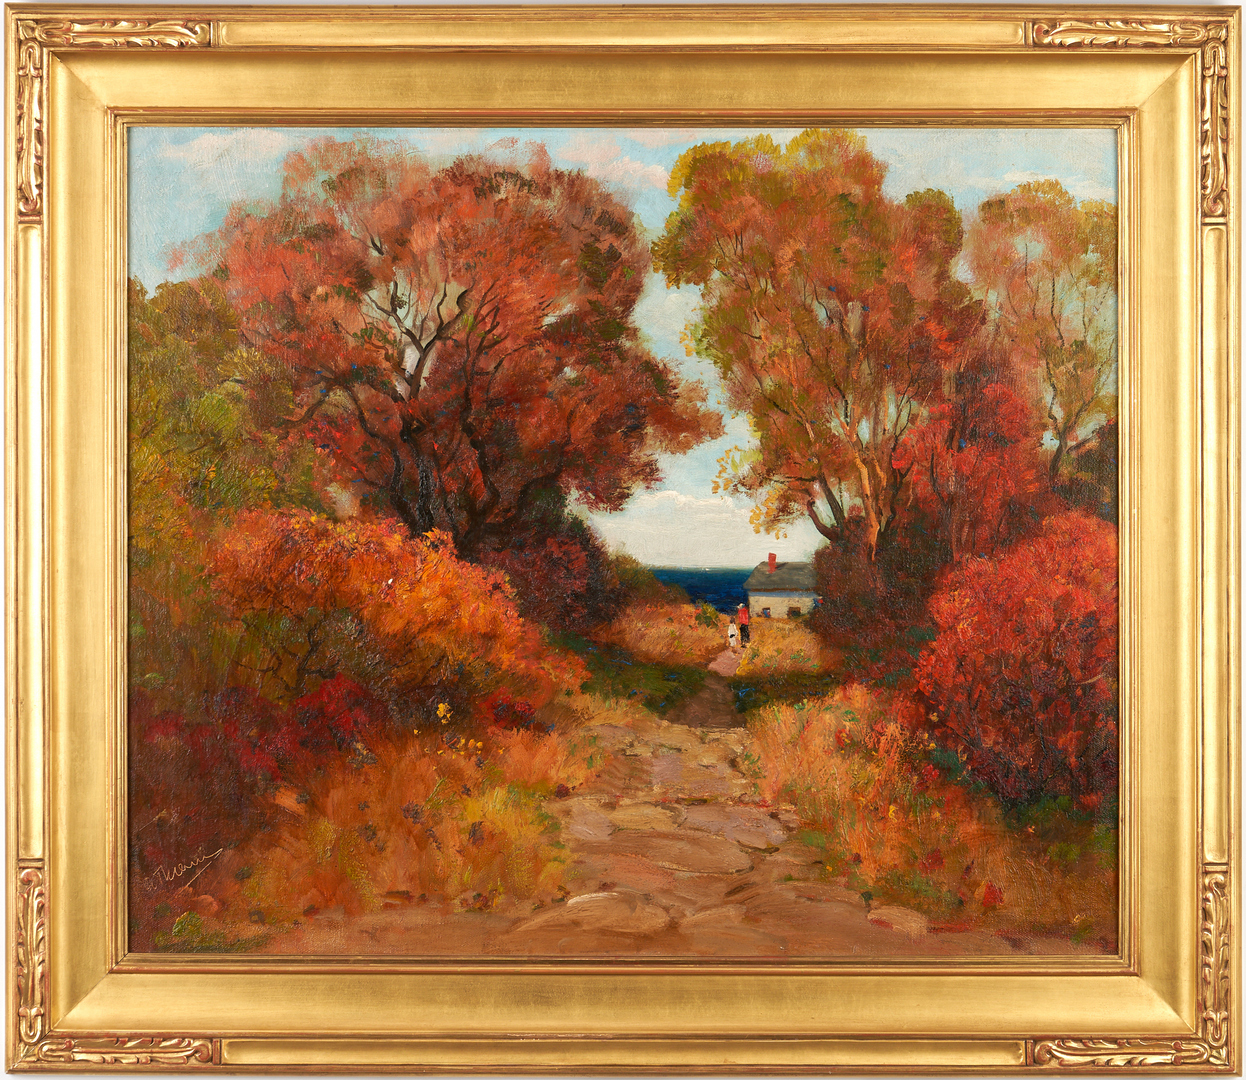 Lot 151: Anthony Thieme O/C Landscape Painting, Figures on a Country Road